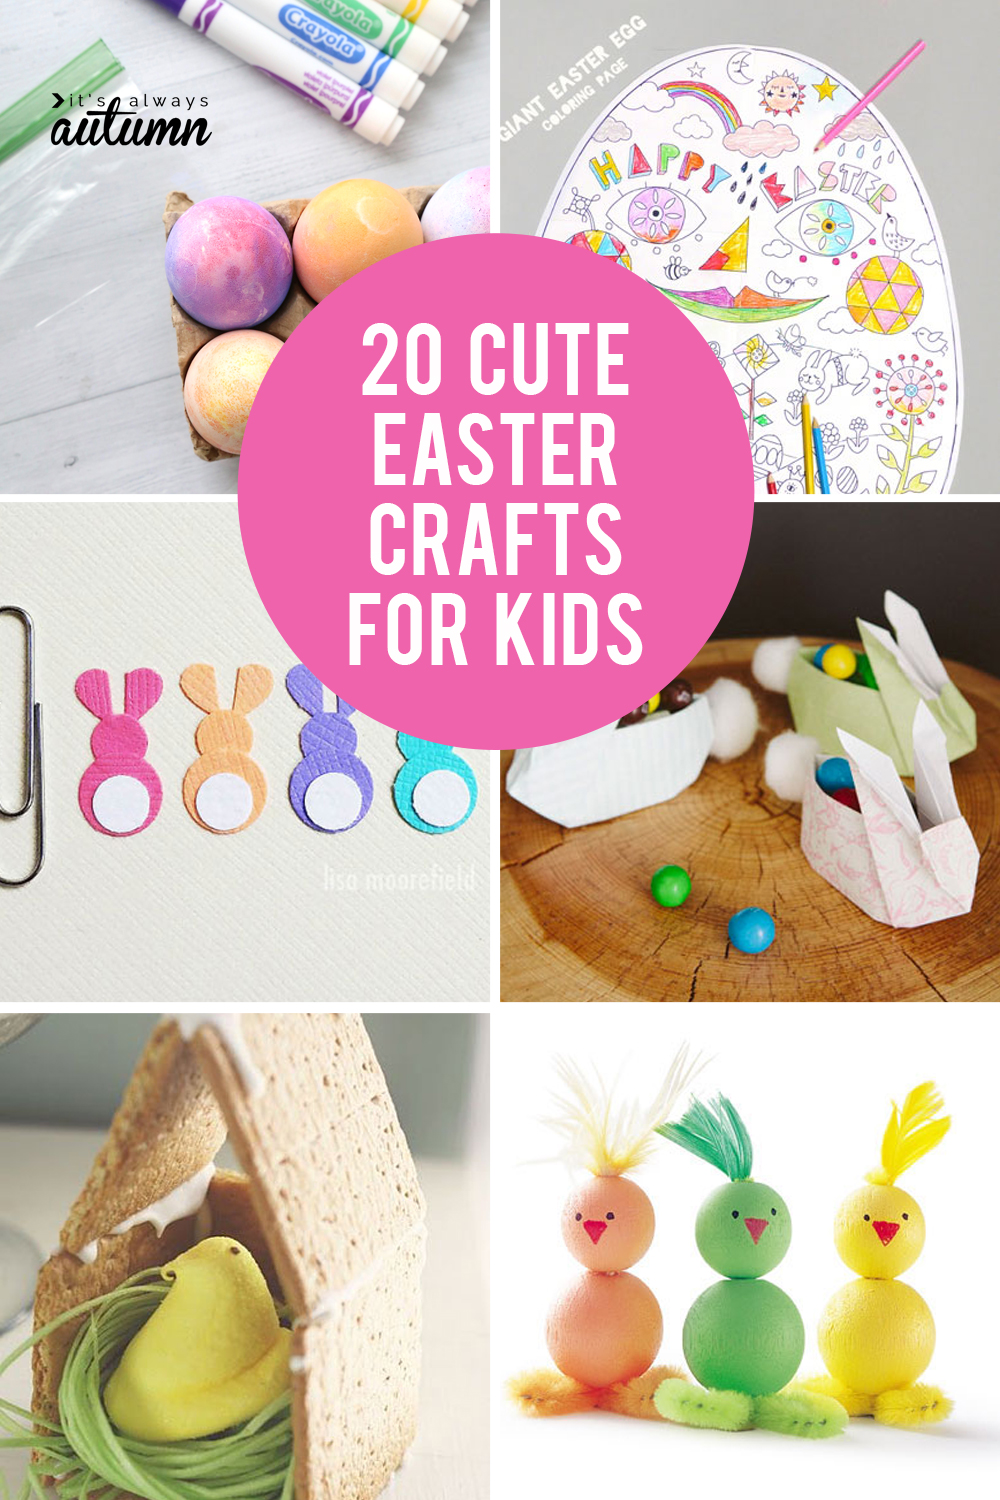 20 cute Easter crafts for kids! Easy Easter crafts and activities.